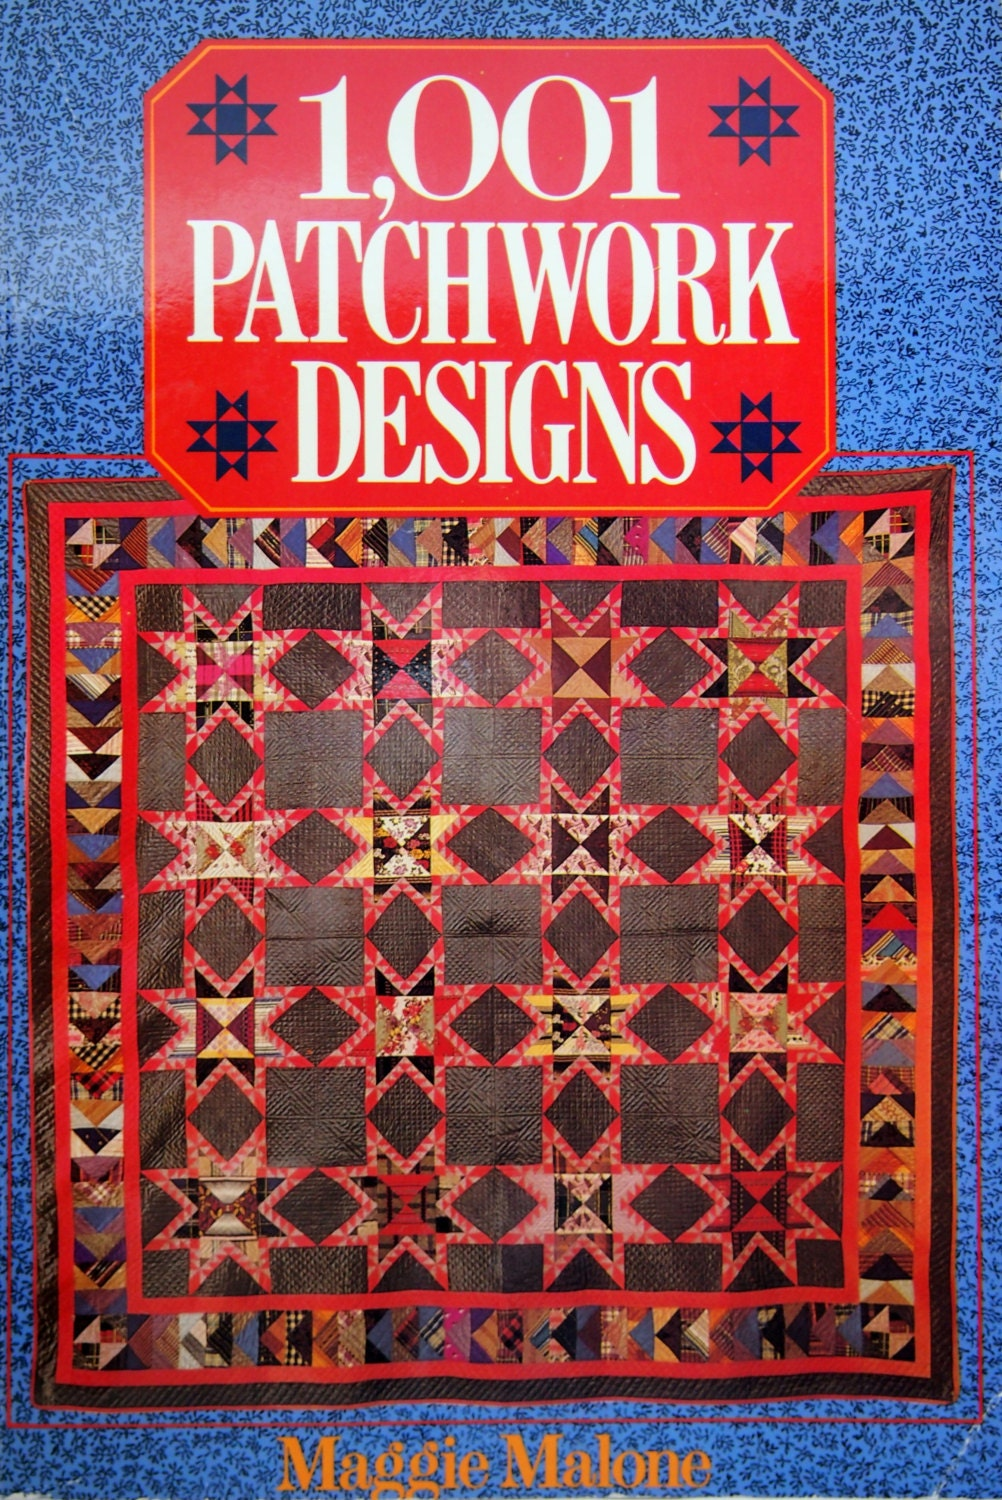 1001 Patchwork Designs By Maggie Malone Vintage Paperback